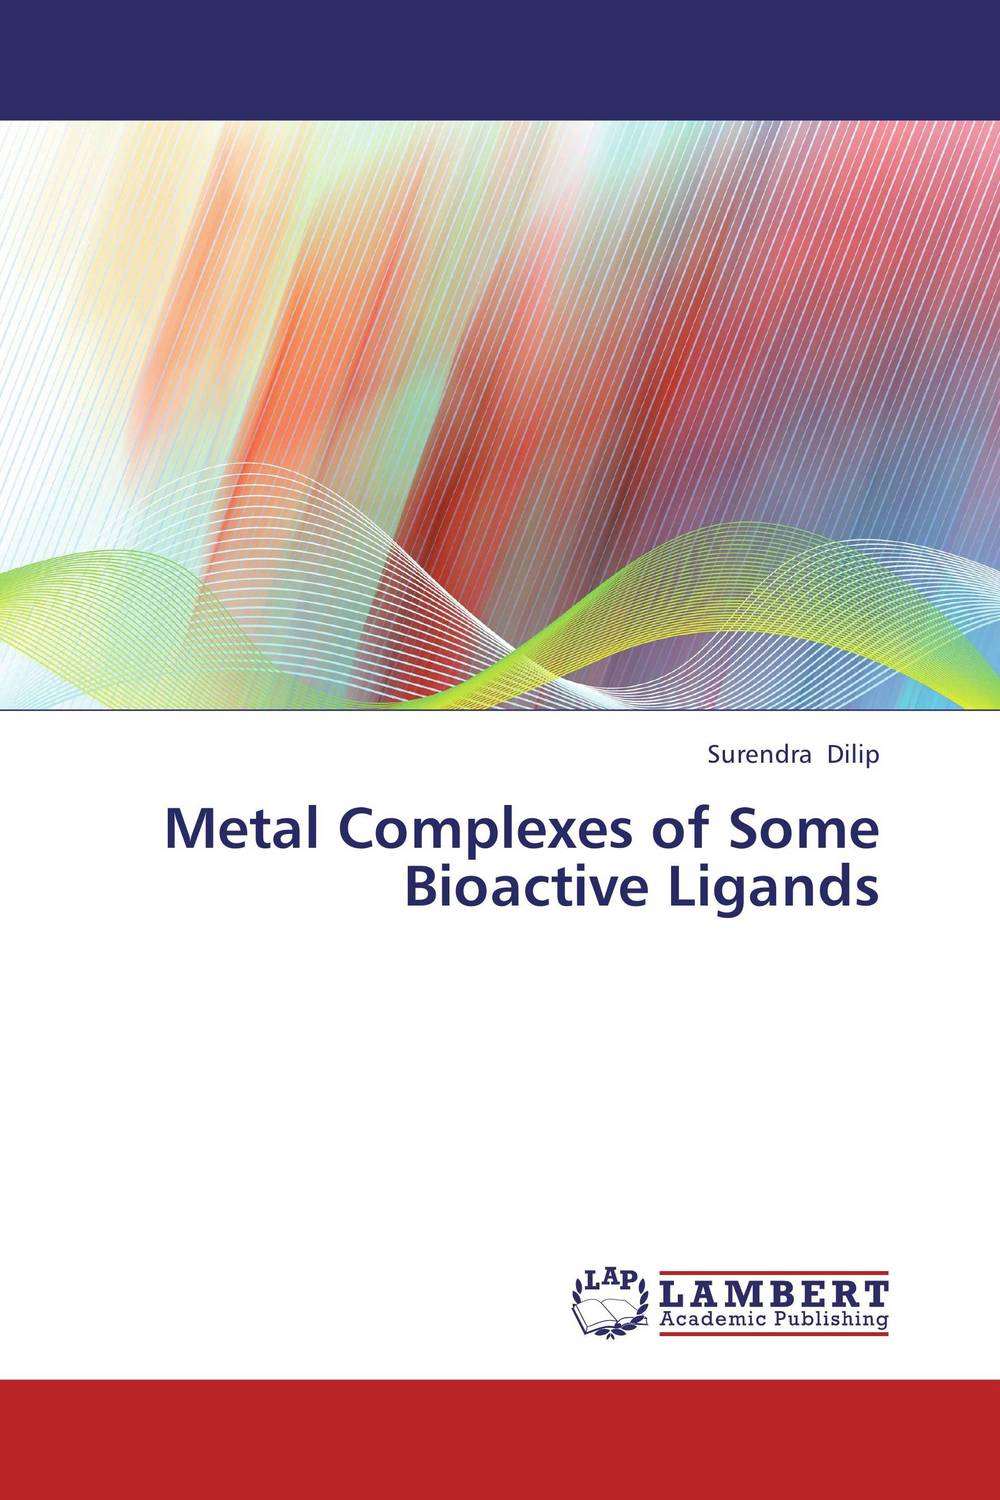 Metal Complexes of Some Bioactive Ligands spectroscopic studies on some novel complexes